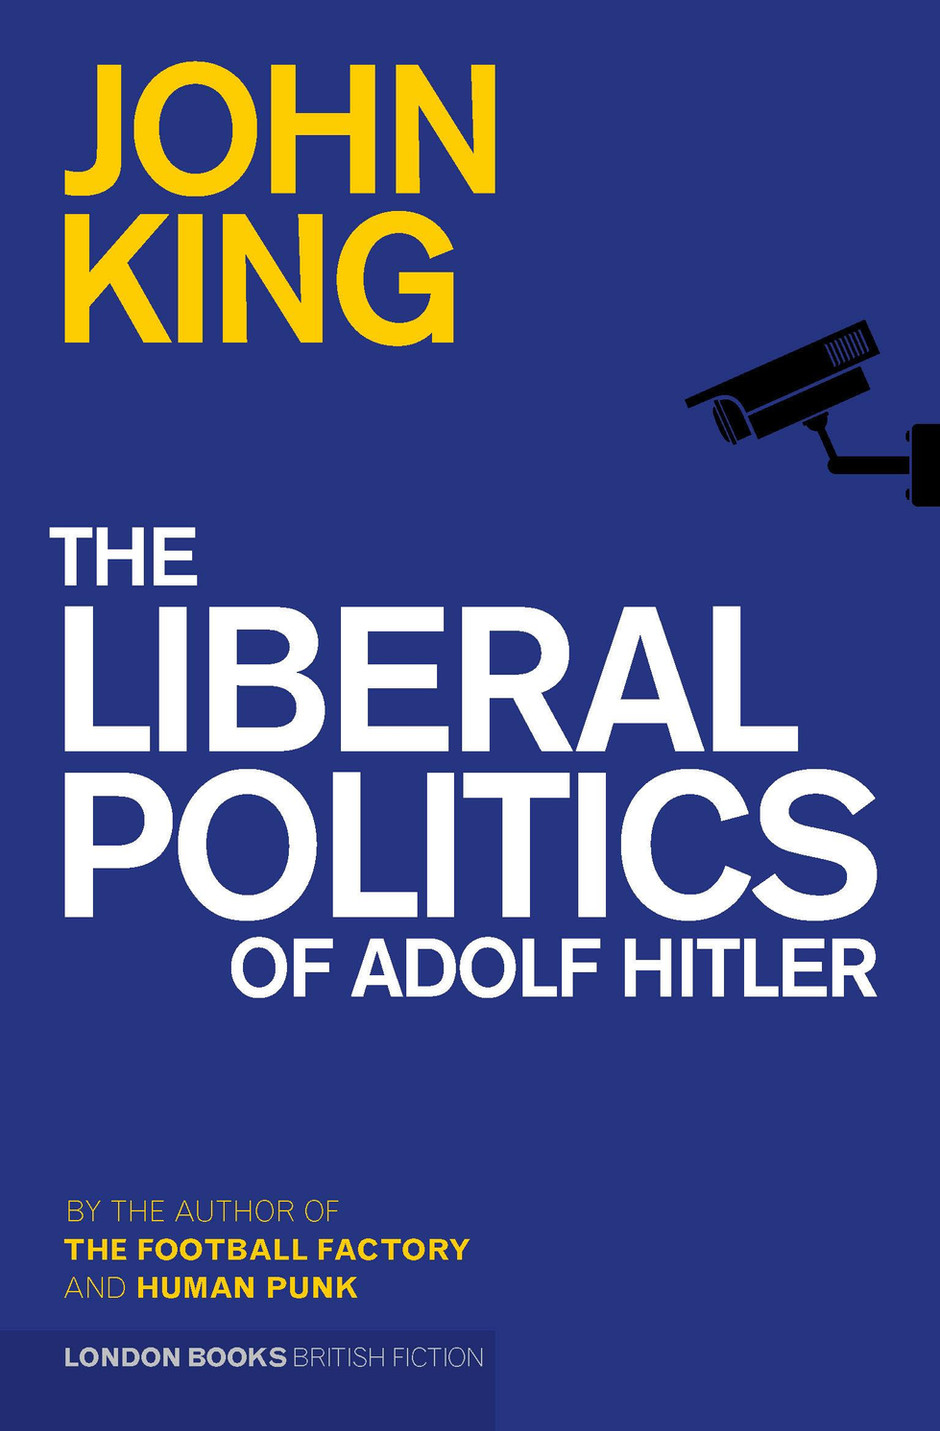 Review: The Liberal Politics of Adolf Hitler